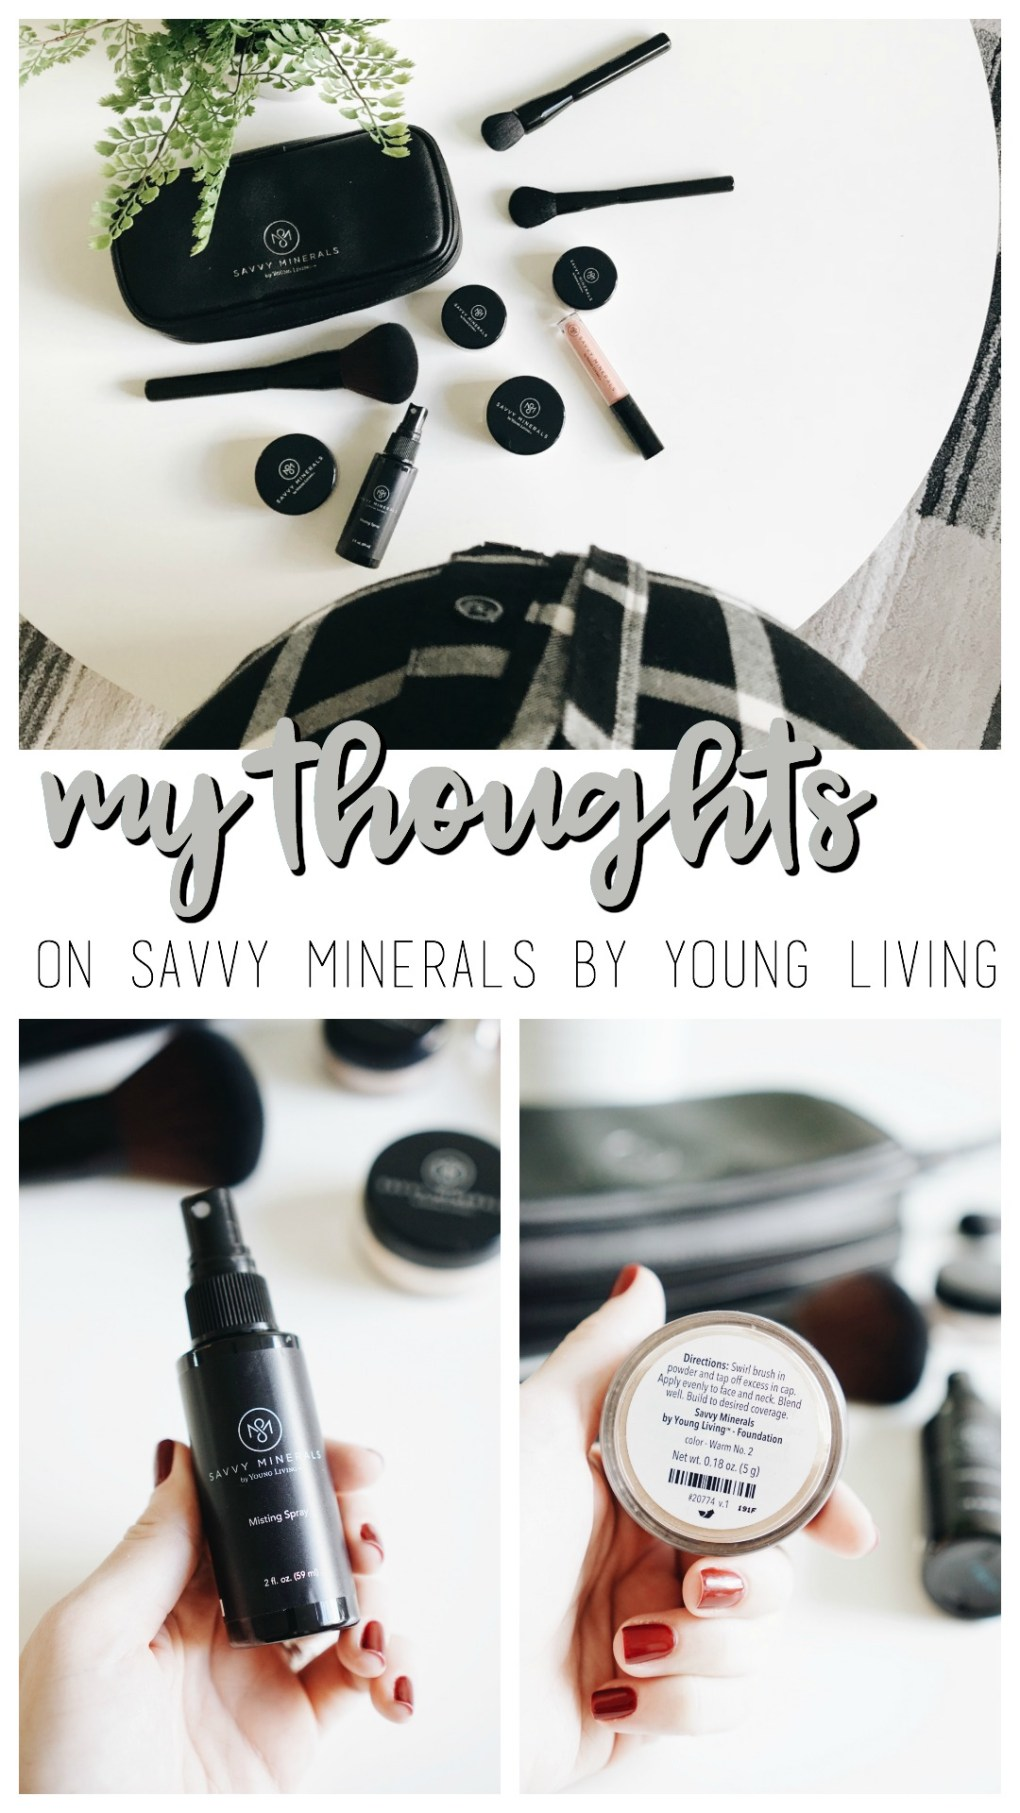 Safer Skincare with Savvy Mineral Makeup by Young Living!